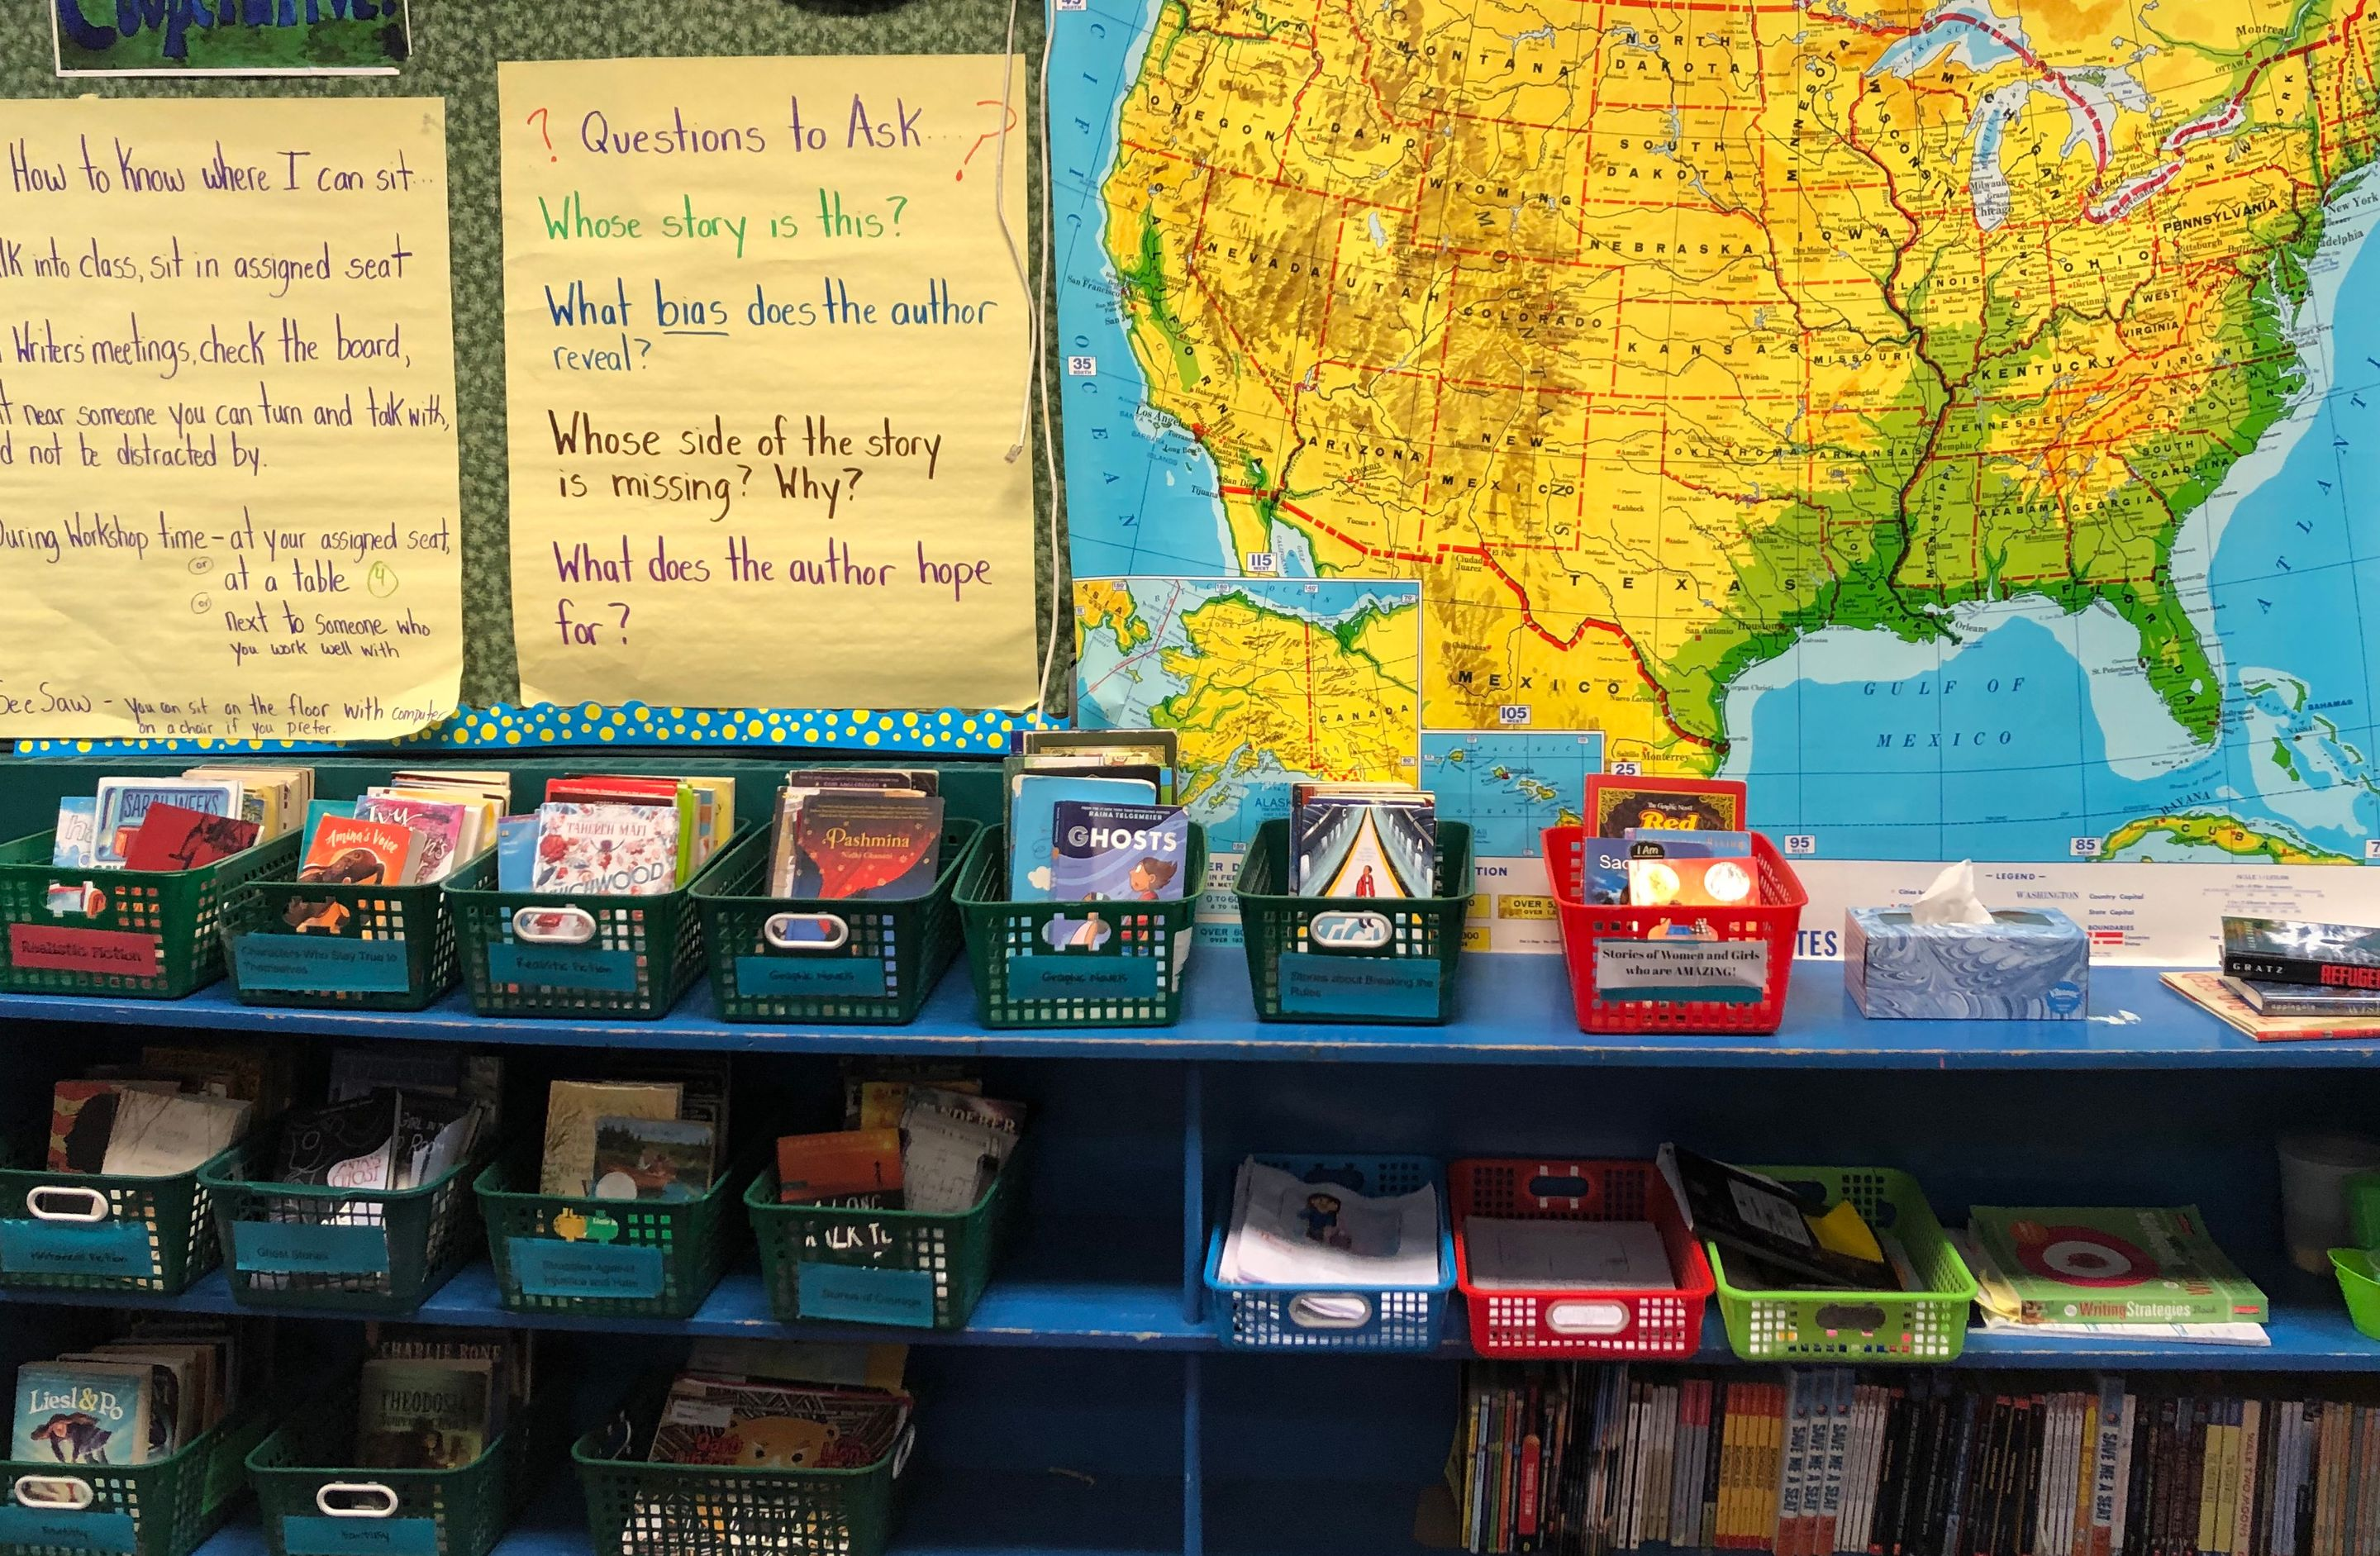 A shelf full of bins of books with a map of the United States behind it